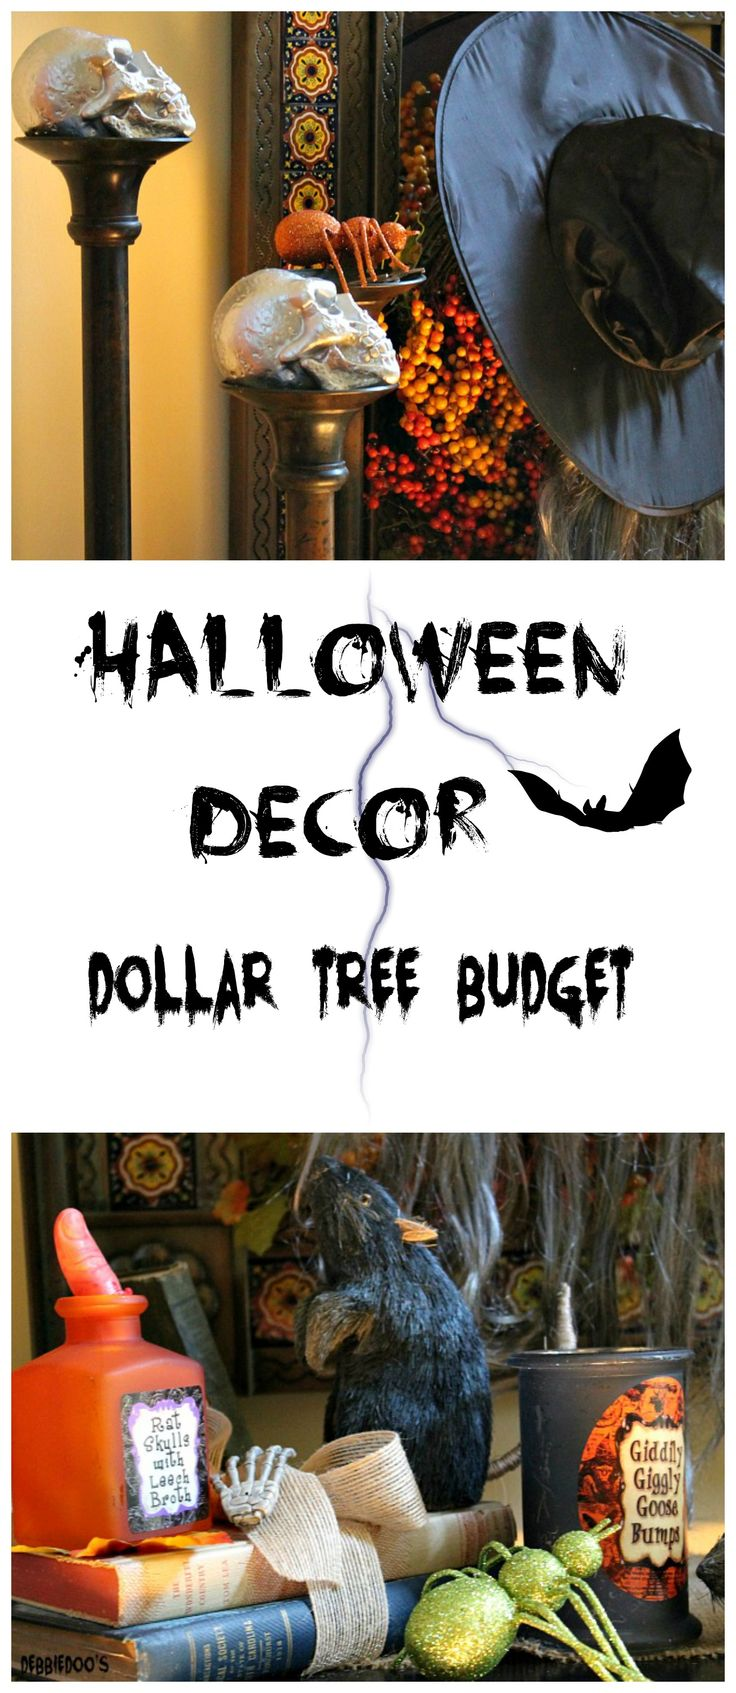 156 Best Images About Dollar Tree On Pinterest Crafts Dollar Tree Decor And Dollar Tree